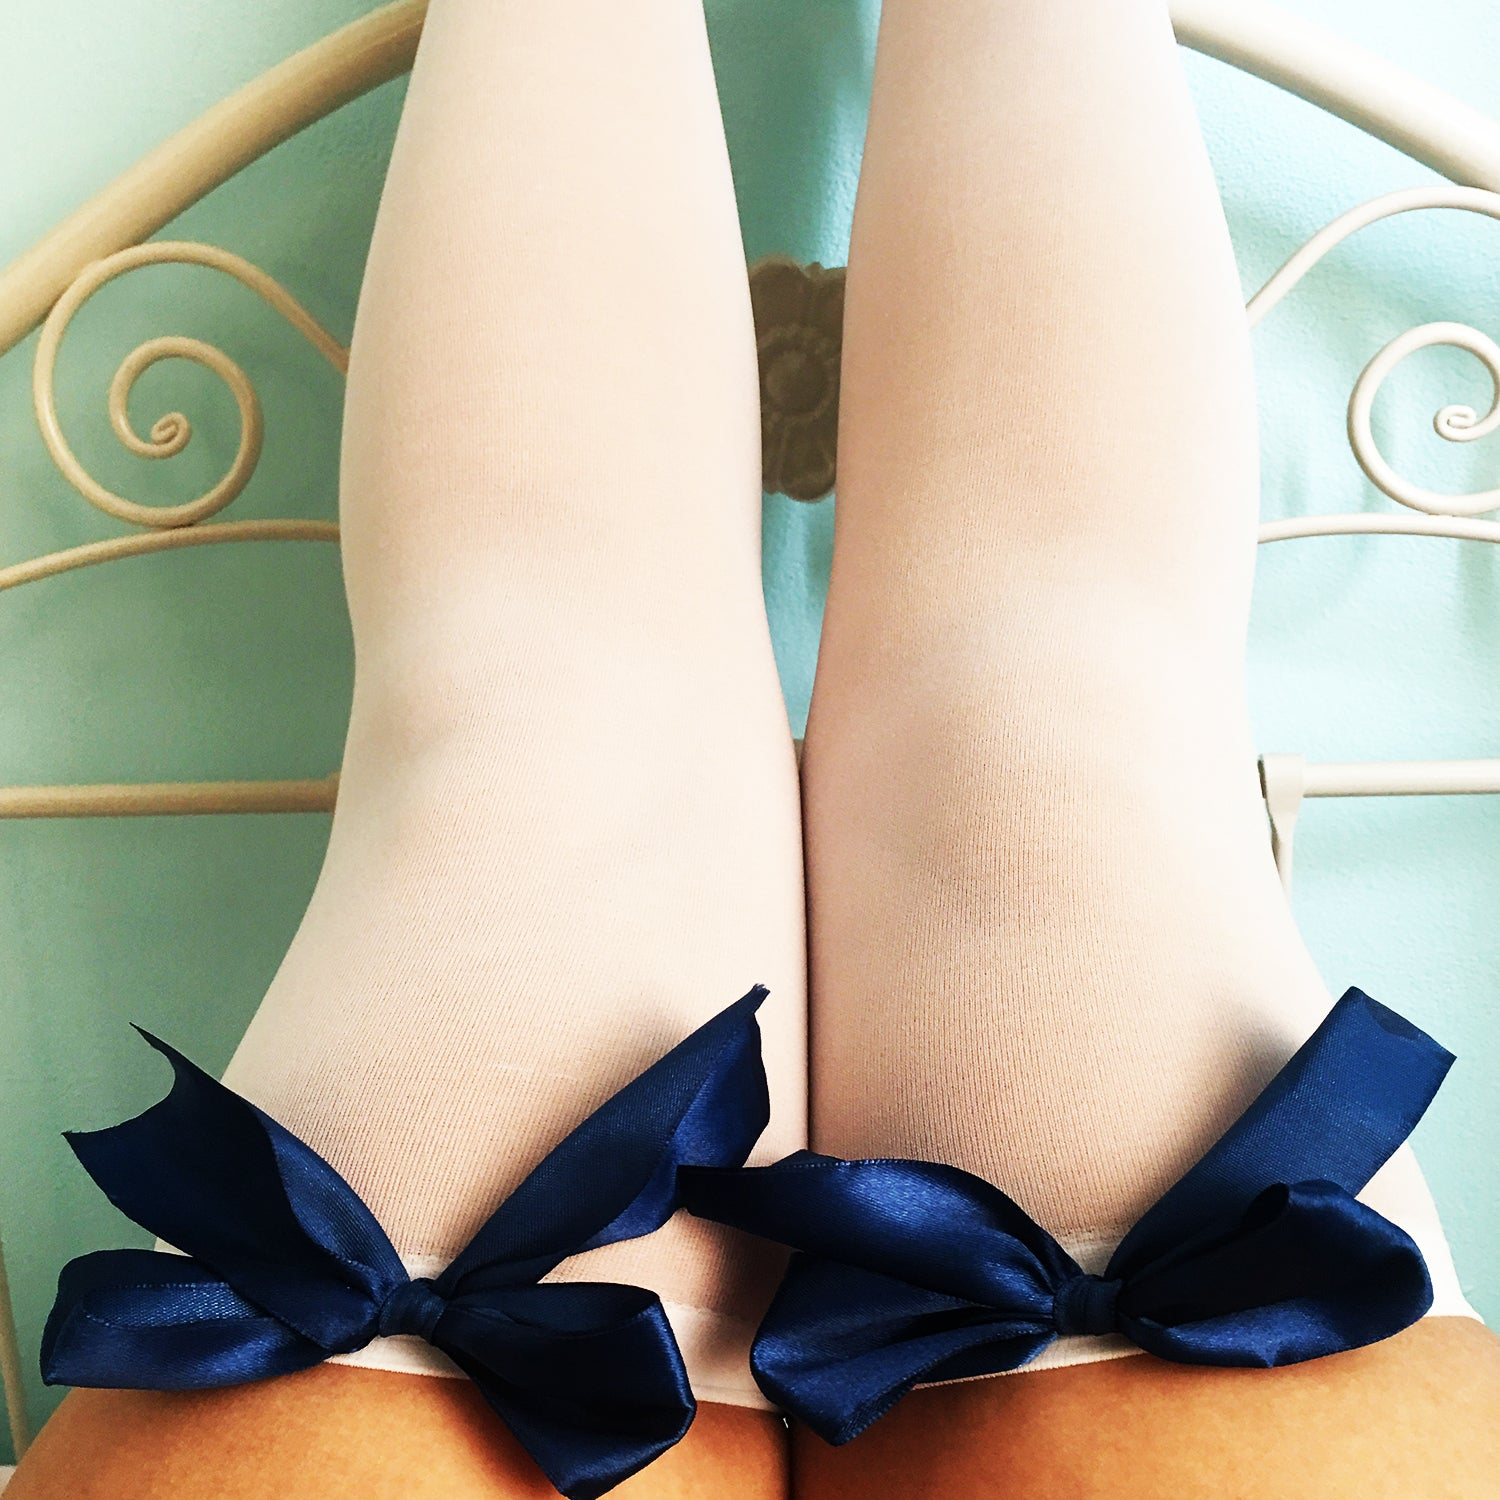 Ava Pin-Up White With Navy Blue Bows Thigh High Stockings - Plus Size Available - Cherrylingerie